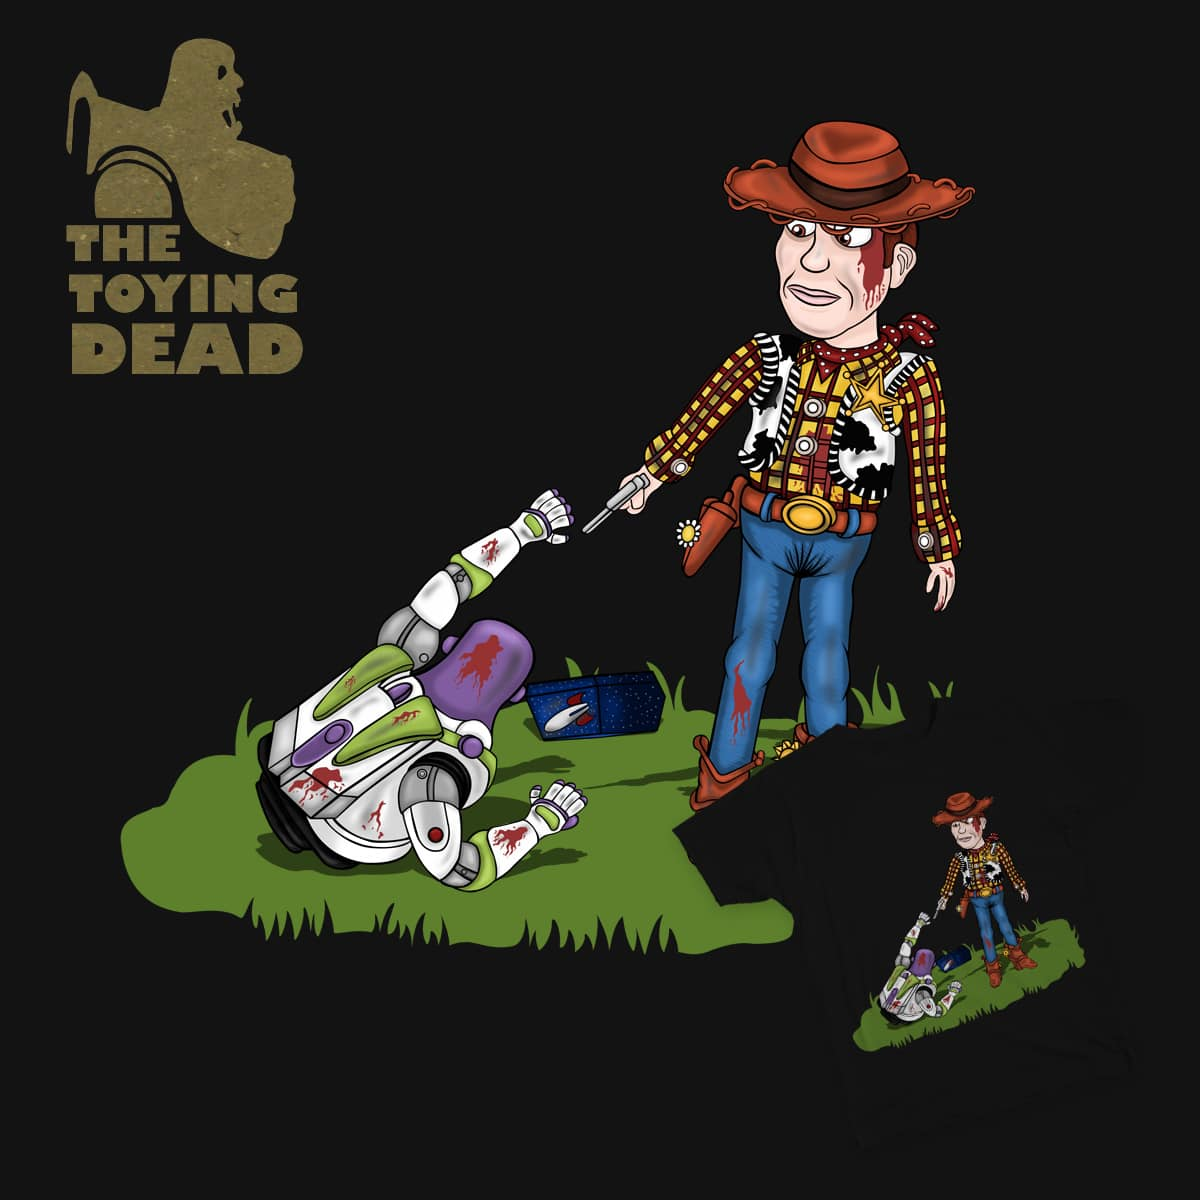 The Toying Dead by Pancake_Panda on Threadless